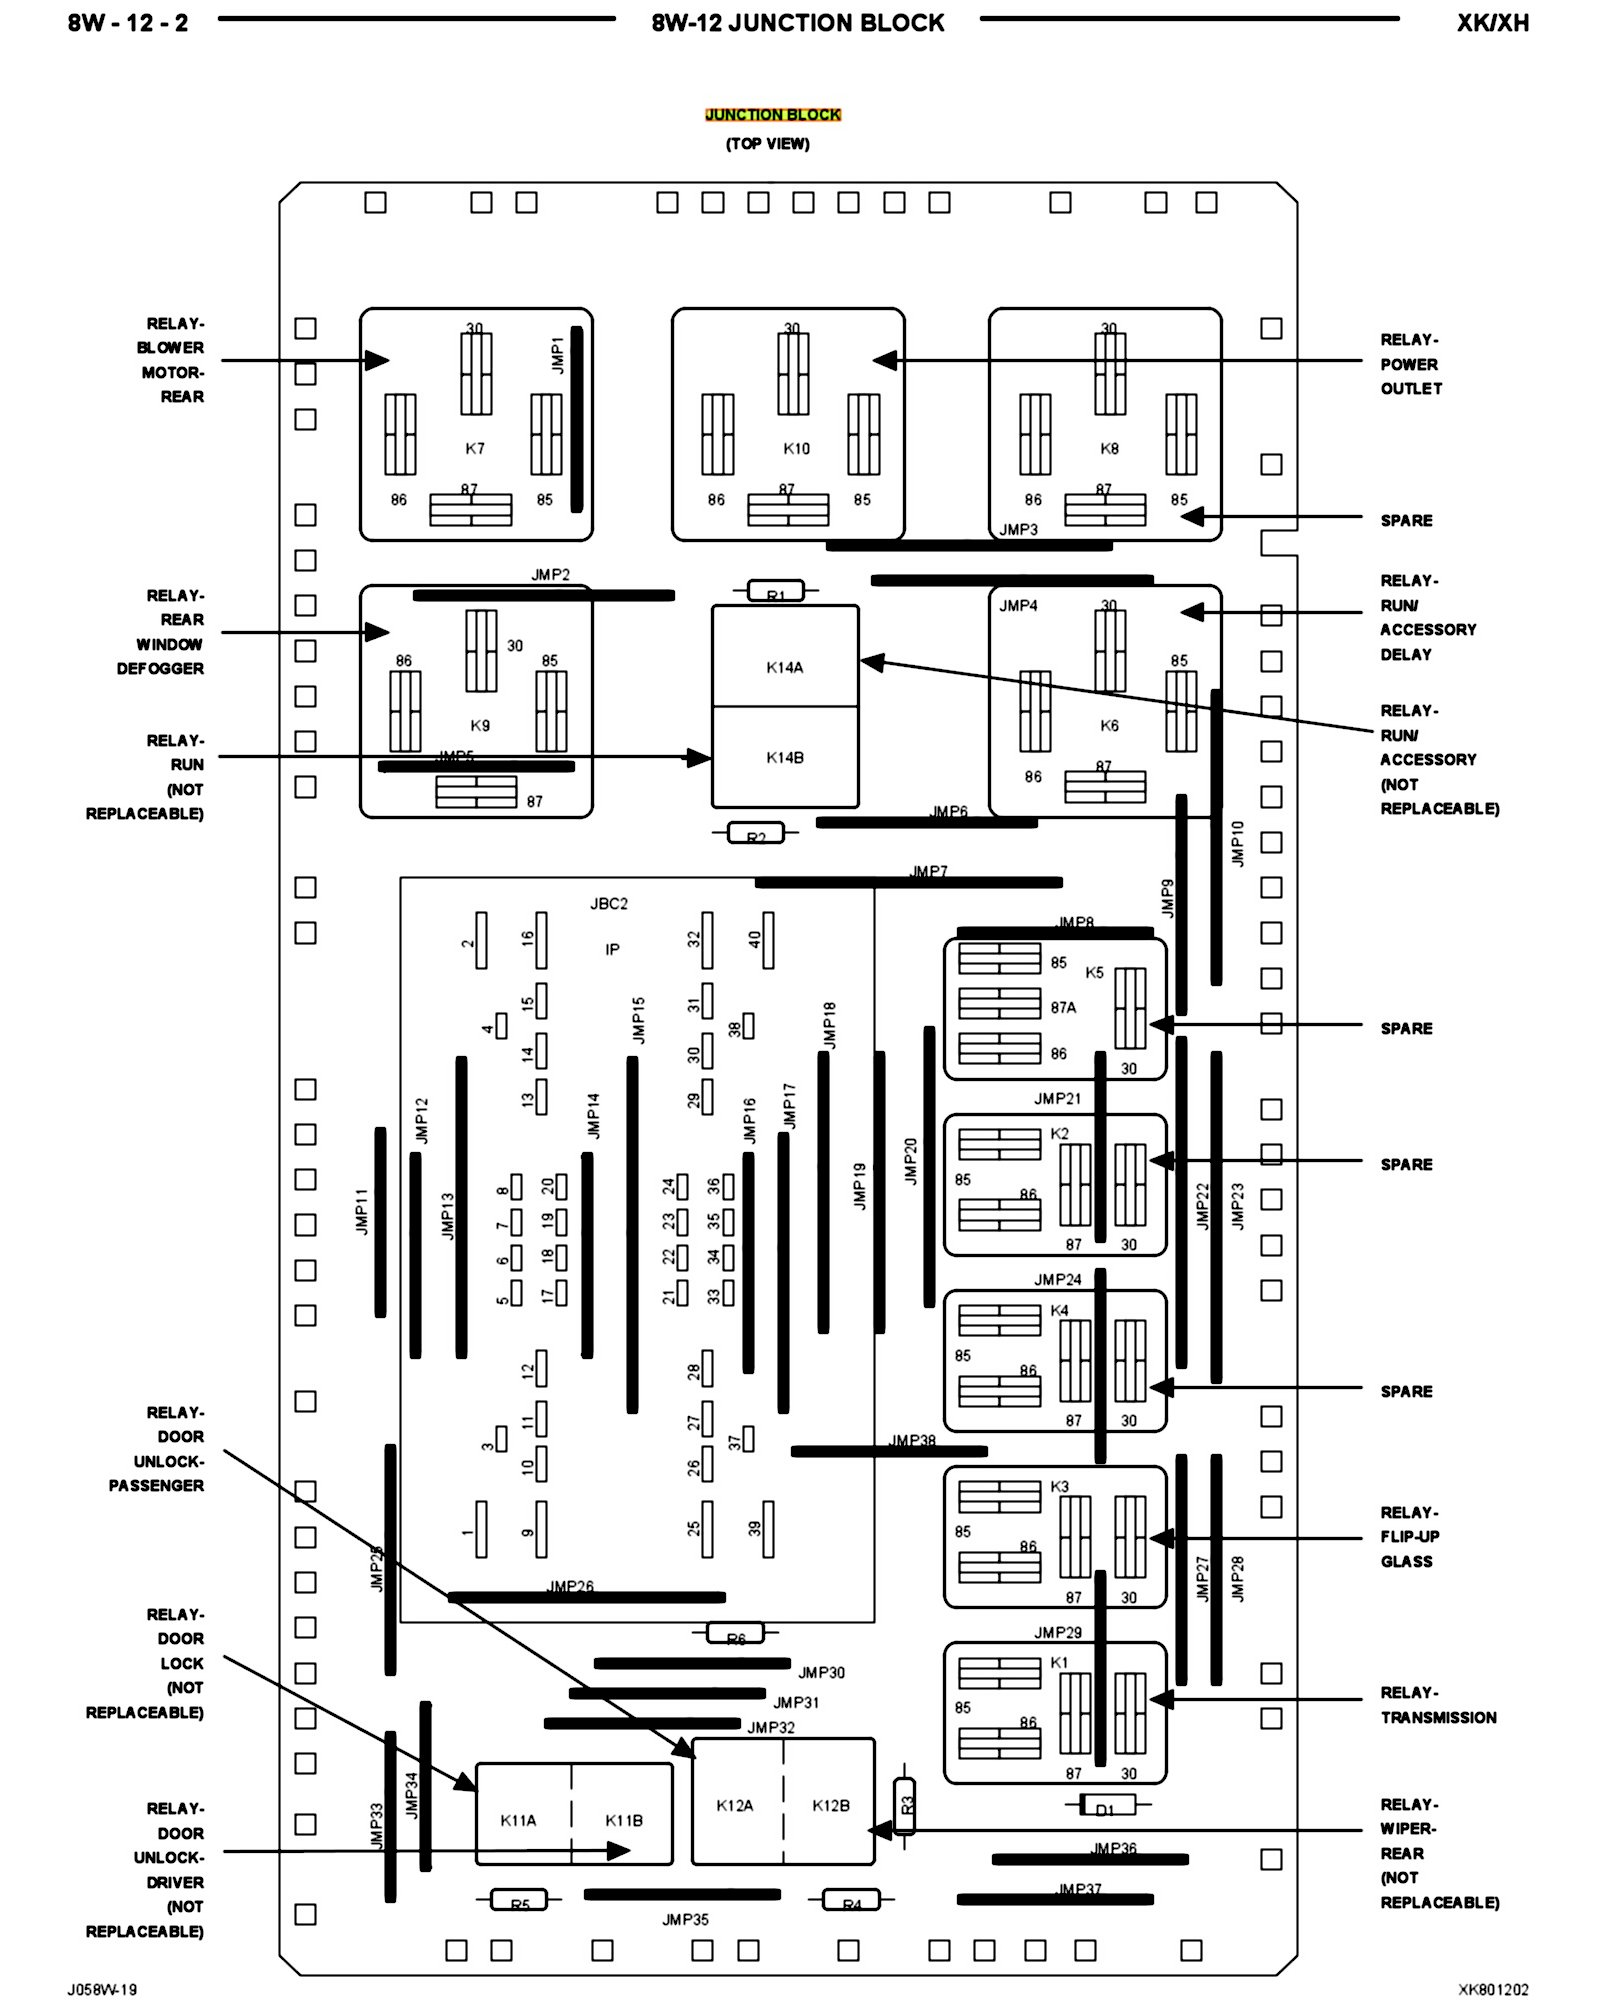 Jeep Commander Fuse Box Diagram Wiring Diagrams Hubs 2011 Wrangler 2008 Liberty